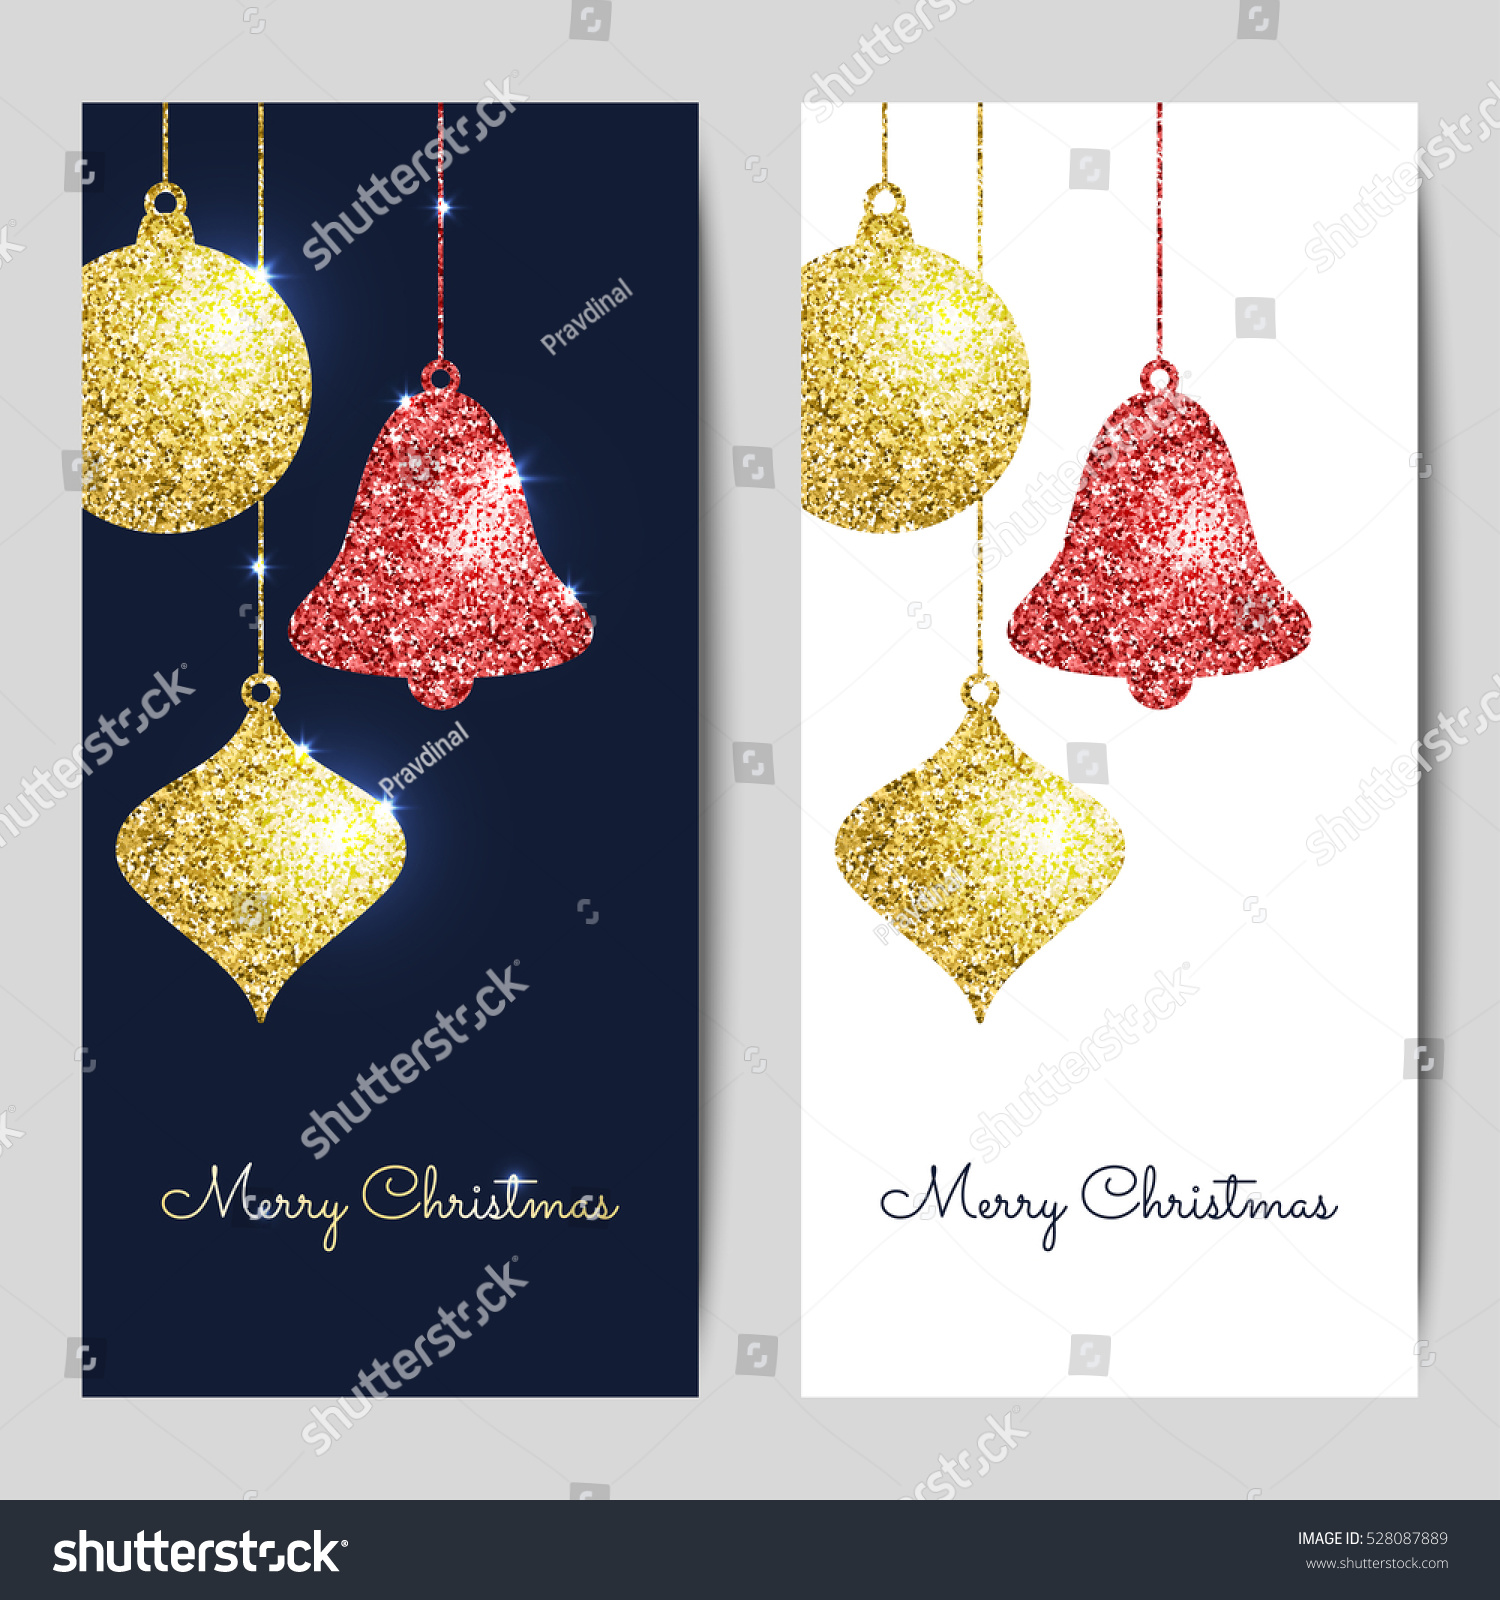 merry christmas backgrounds gold red hanging stock vector